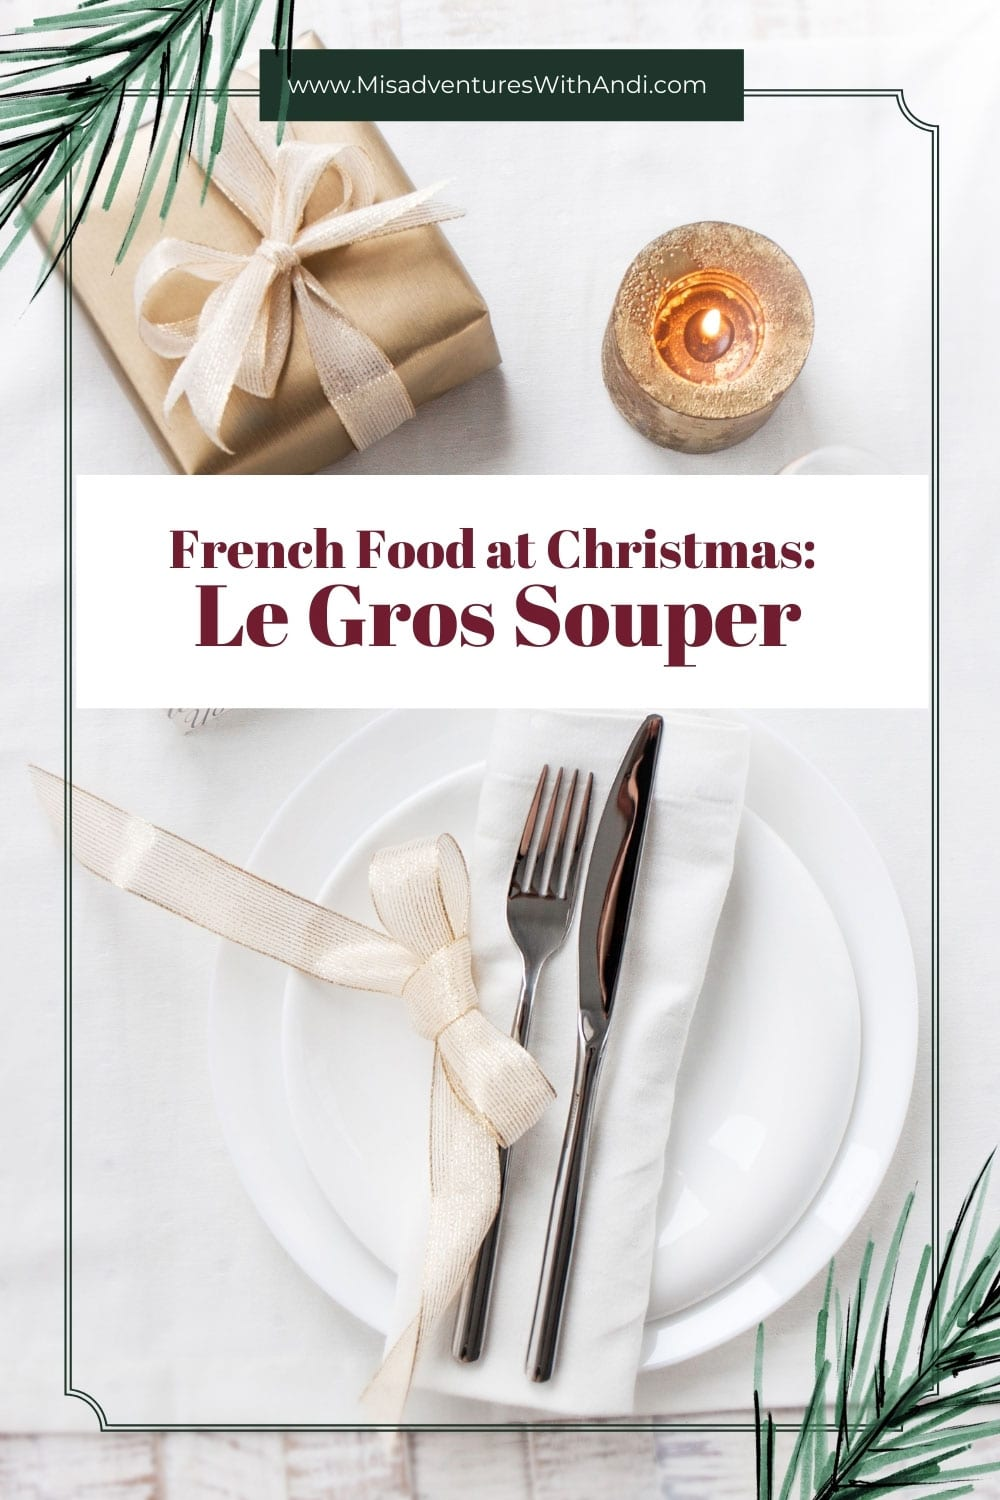 French Food at Christmas: Le Gros Souper: Christmas Holiday Tradition